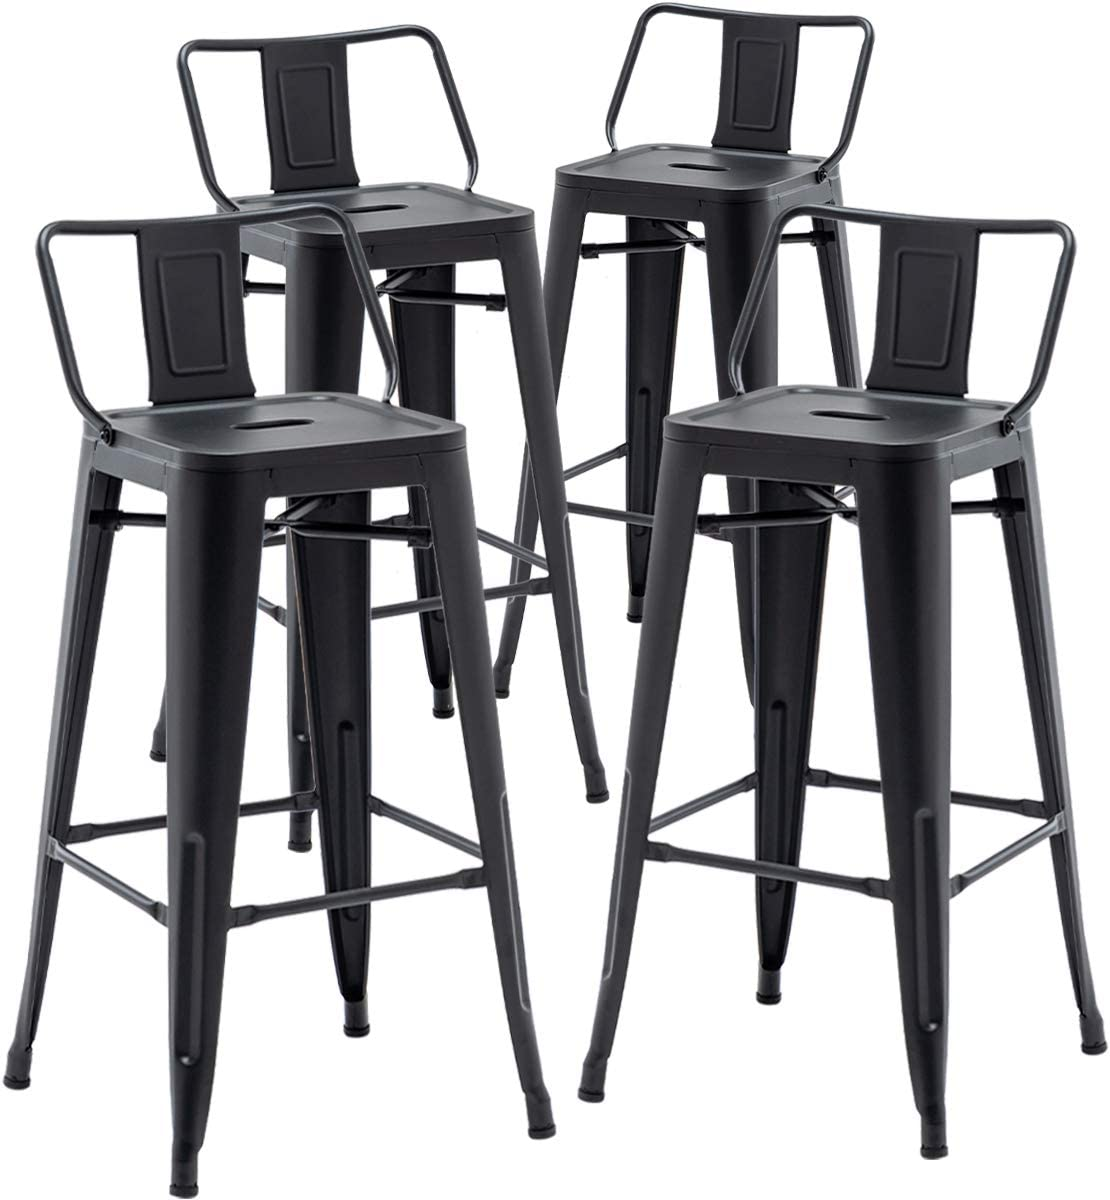 TONGLI Metal Bar Stools Set of 4 Counter Height Stools 30 Inchs Counter Stools Black Bar stools with Backs Bar Height Stools Indoor Outdoor Matte Black, Low Back